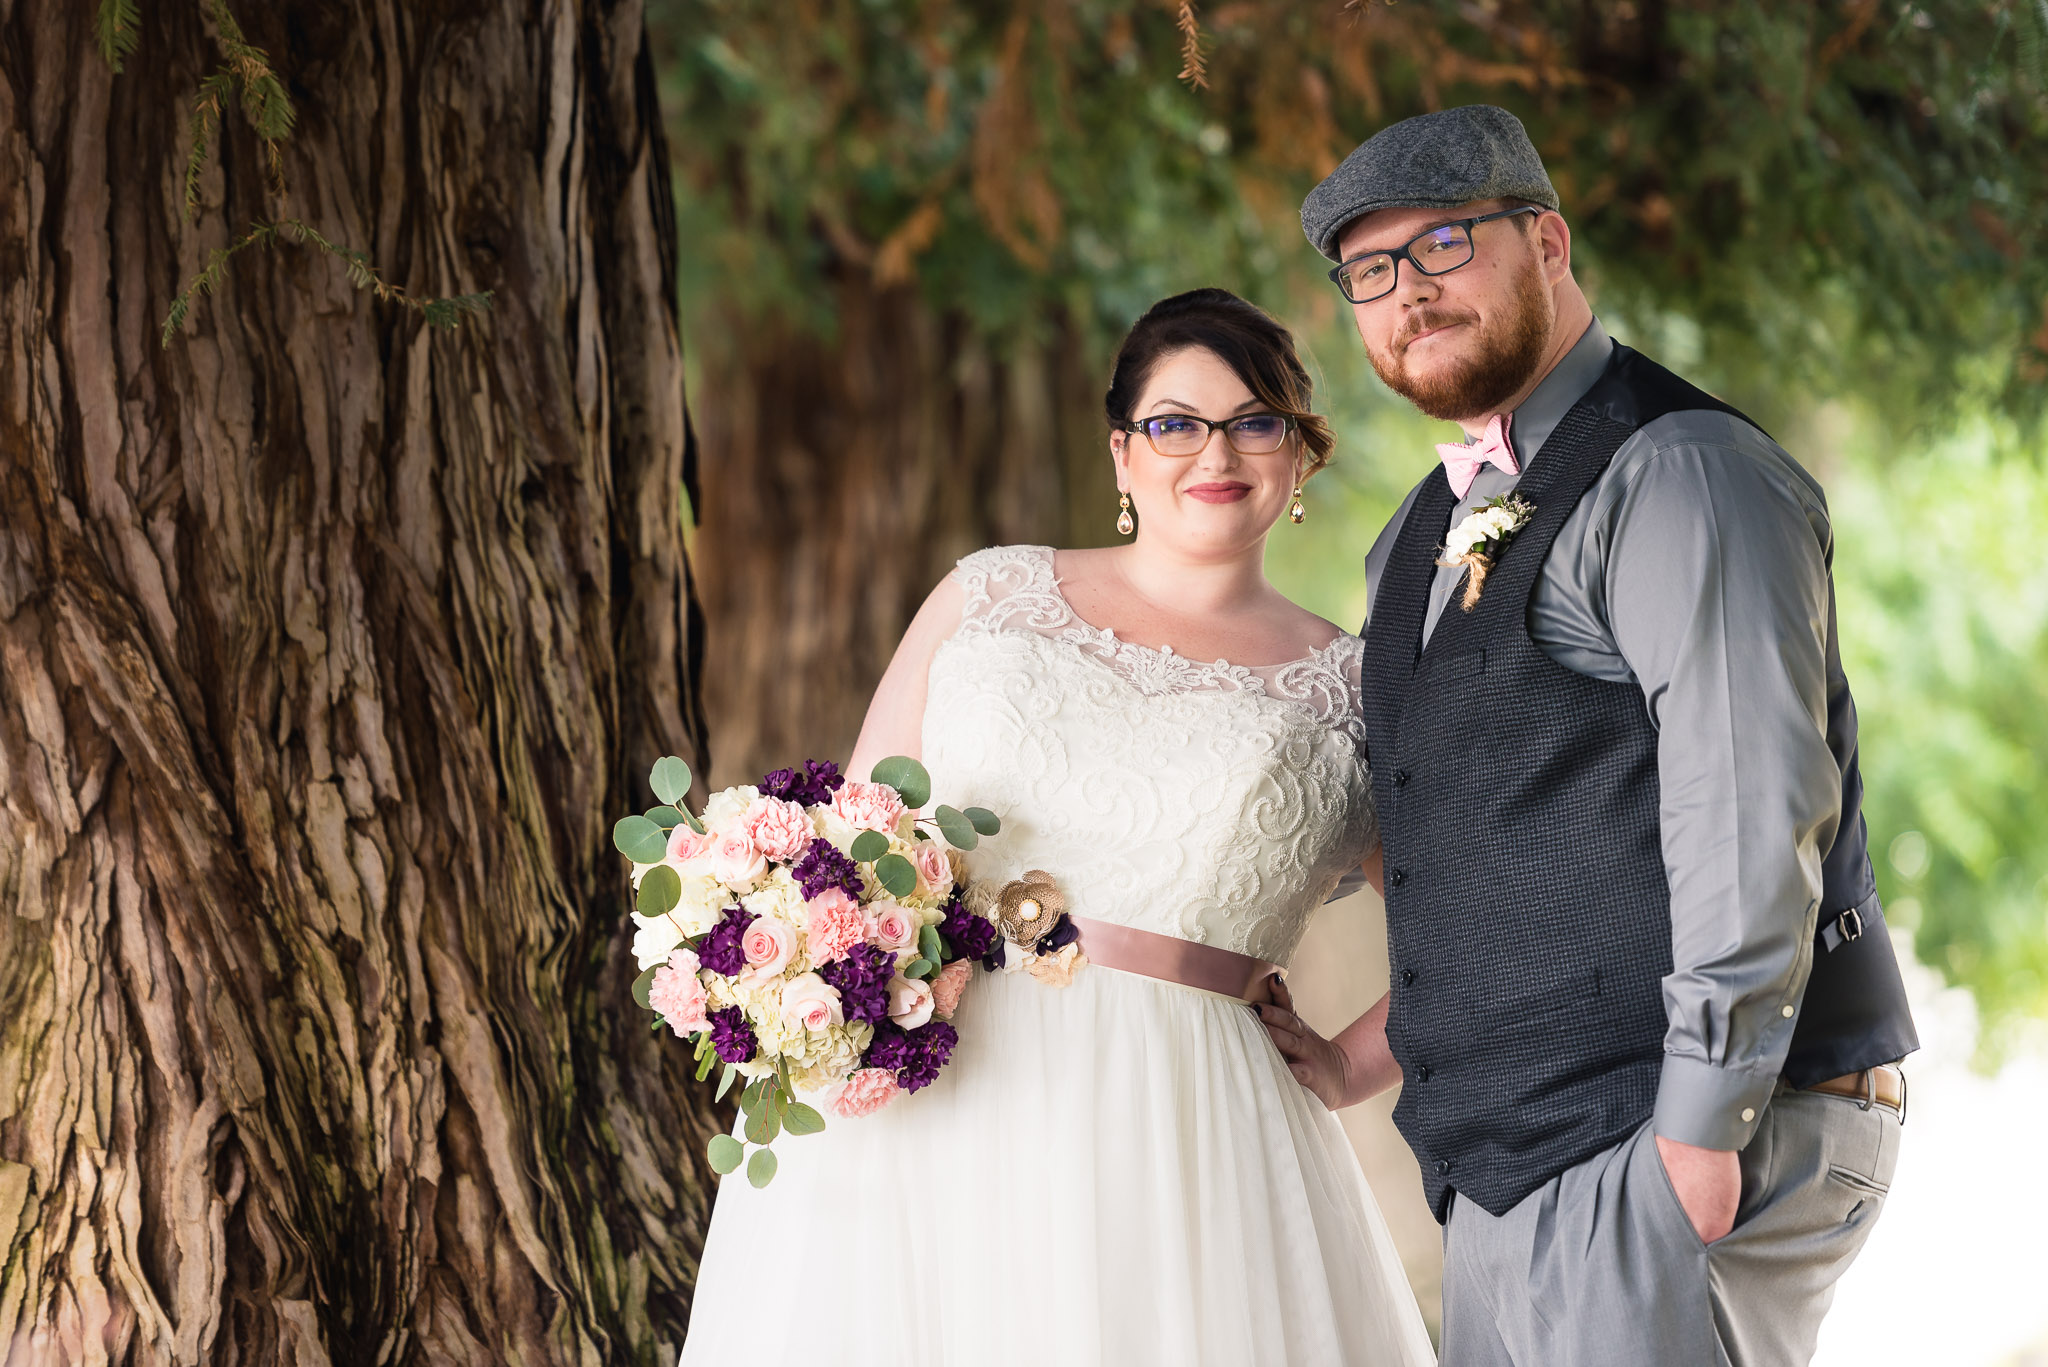 Khrystina and COle Wedding at Crawford's Barn in Sacramento